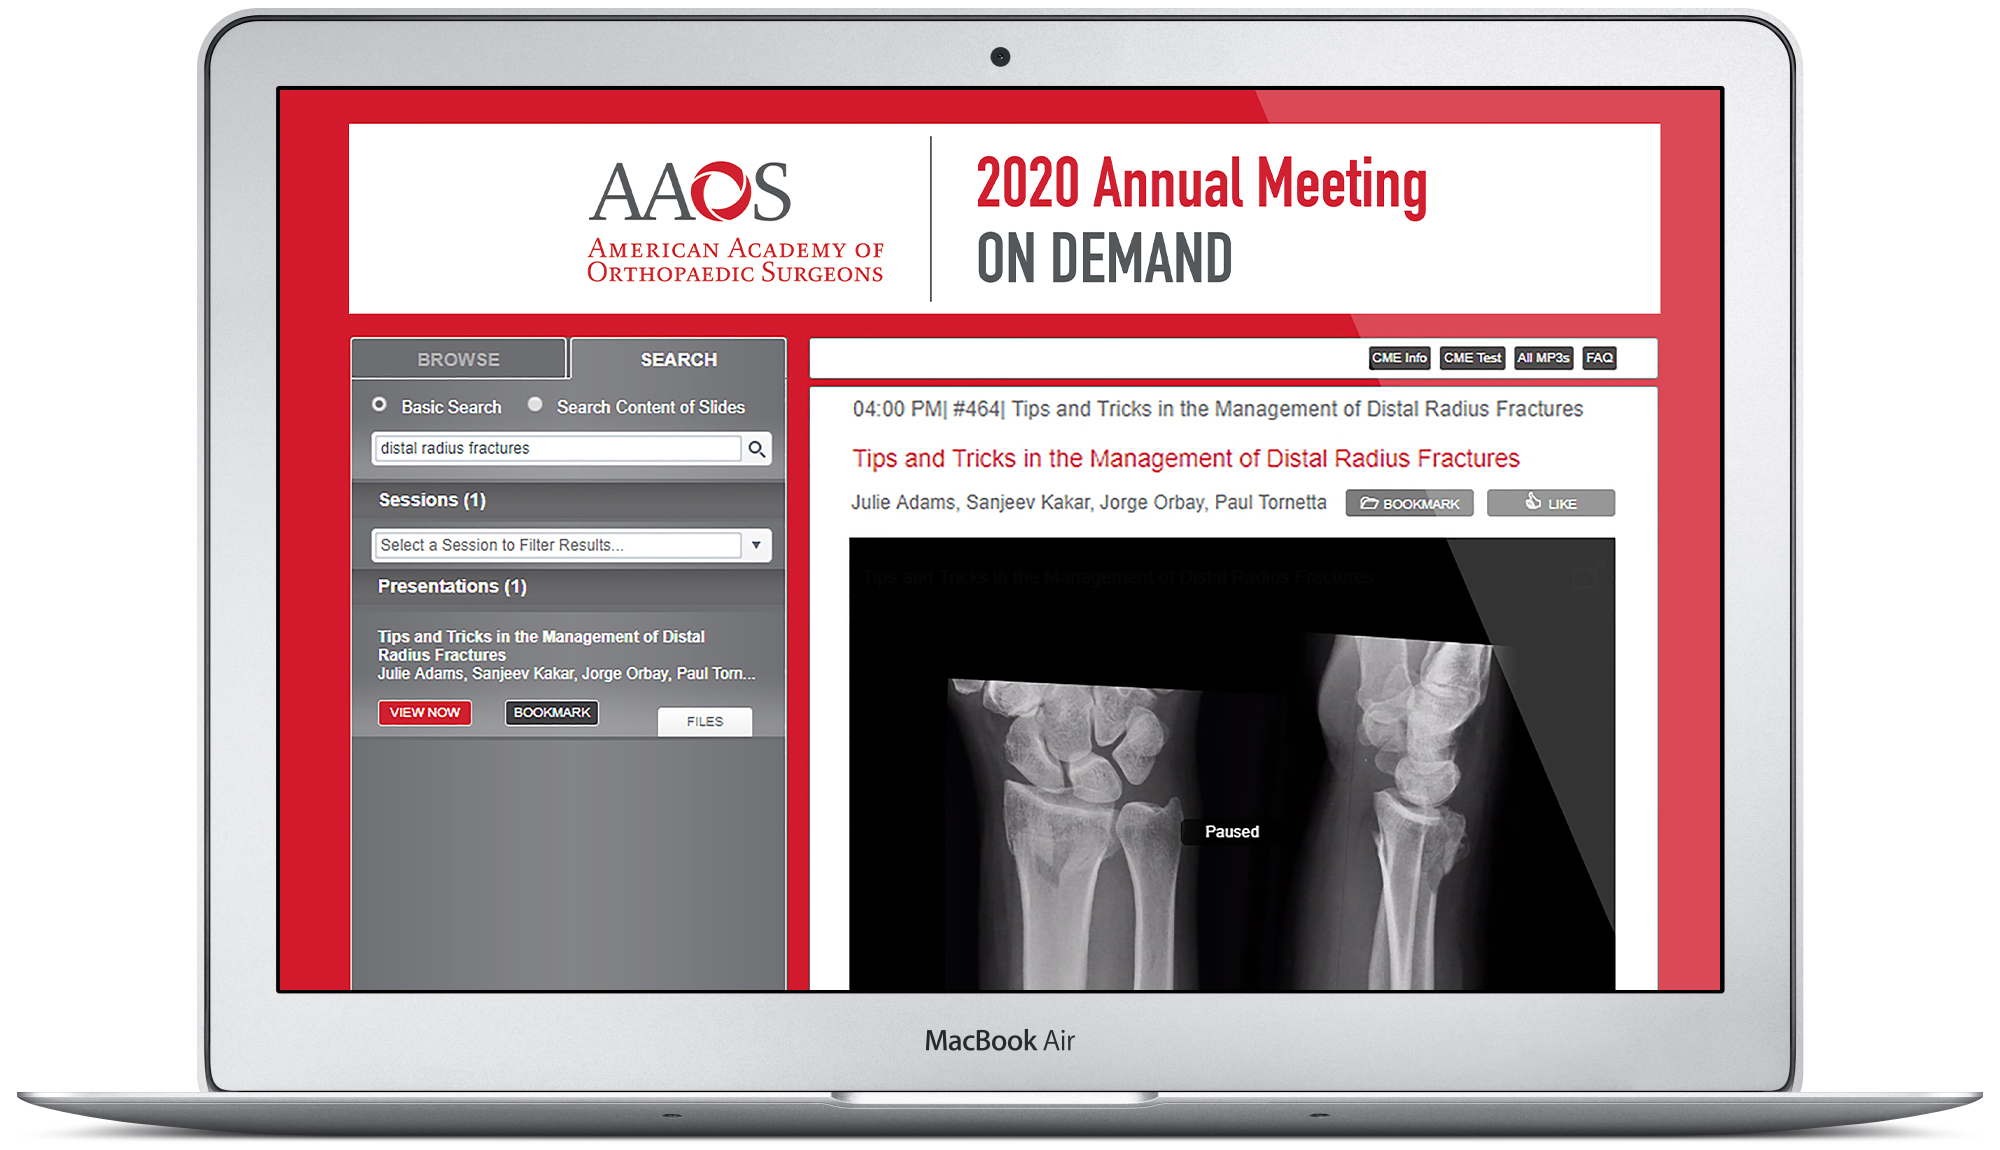 2020 Annual Meeting On Demand